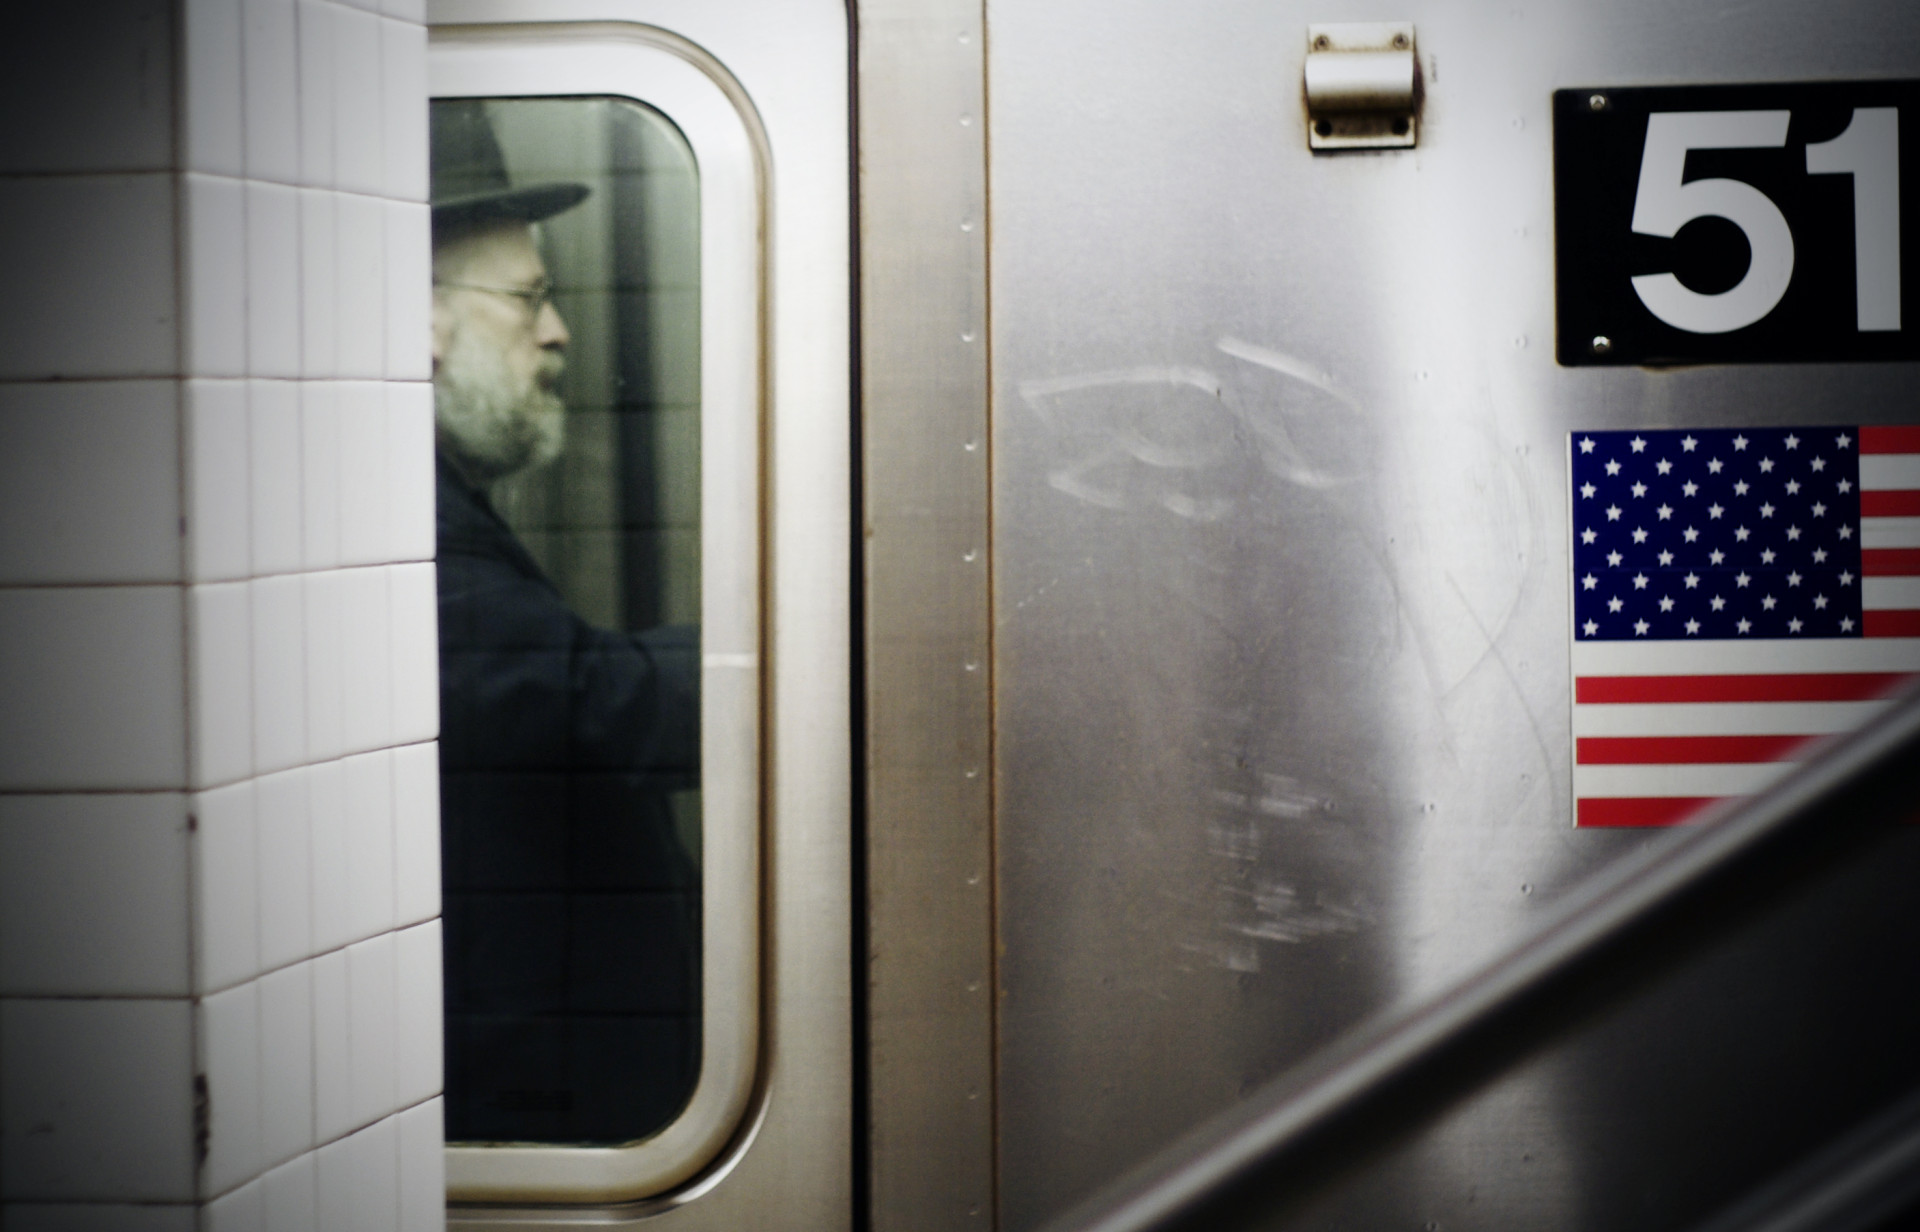 New-York-Subway-Jewish-Man